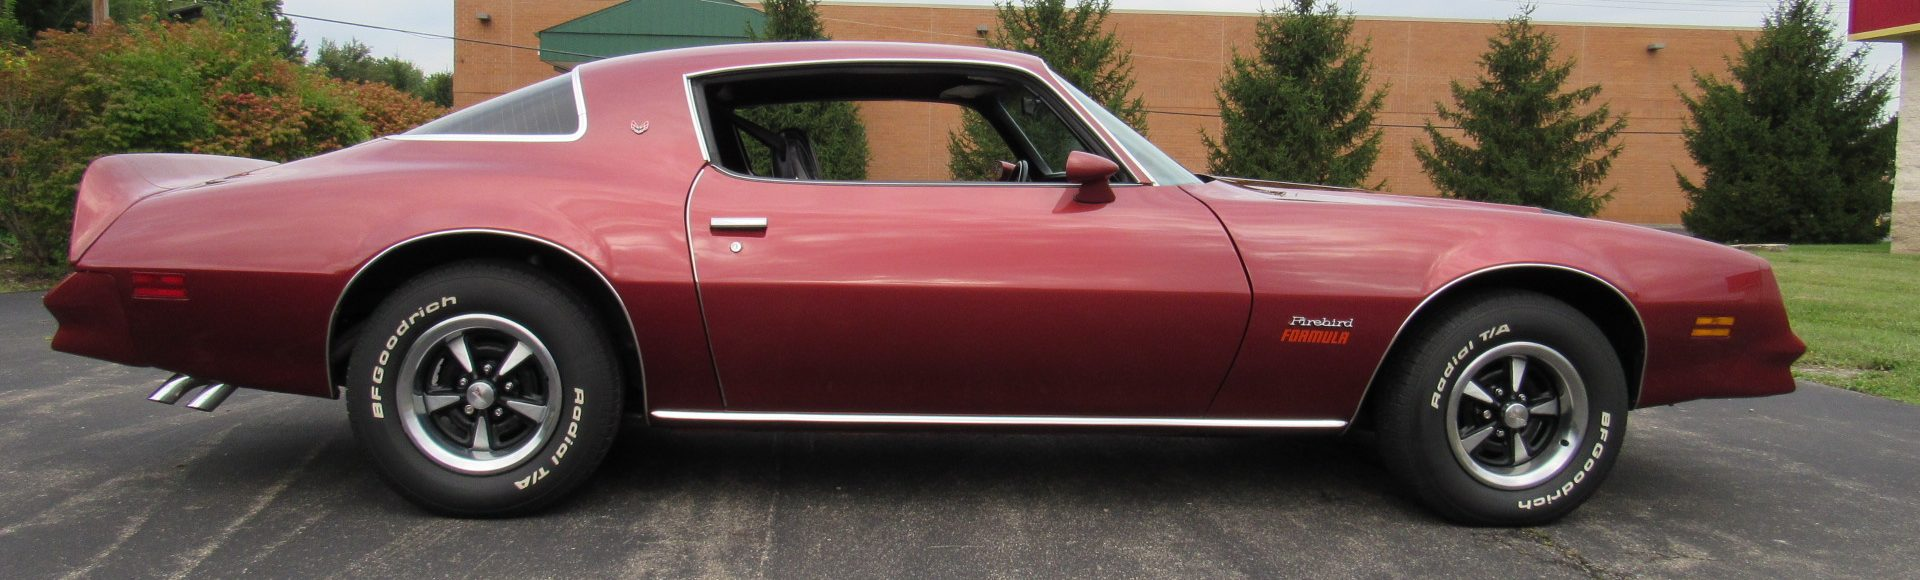 1978 Formula, W72, 4 Speed, Carmine Red $19,900